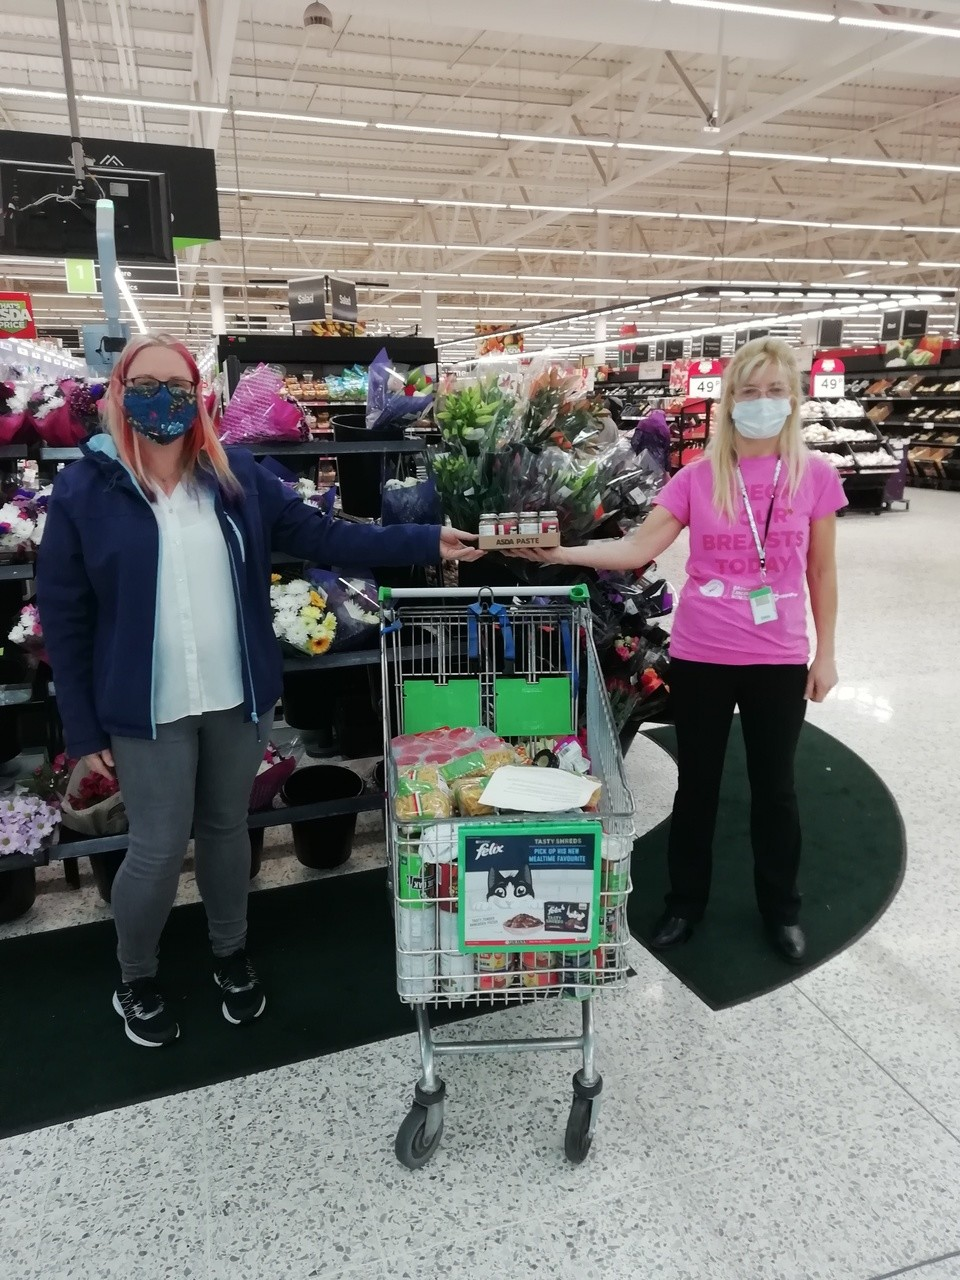 Church of the Nazarene donation | Asda Morley